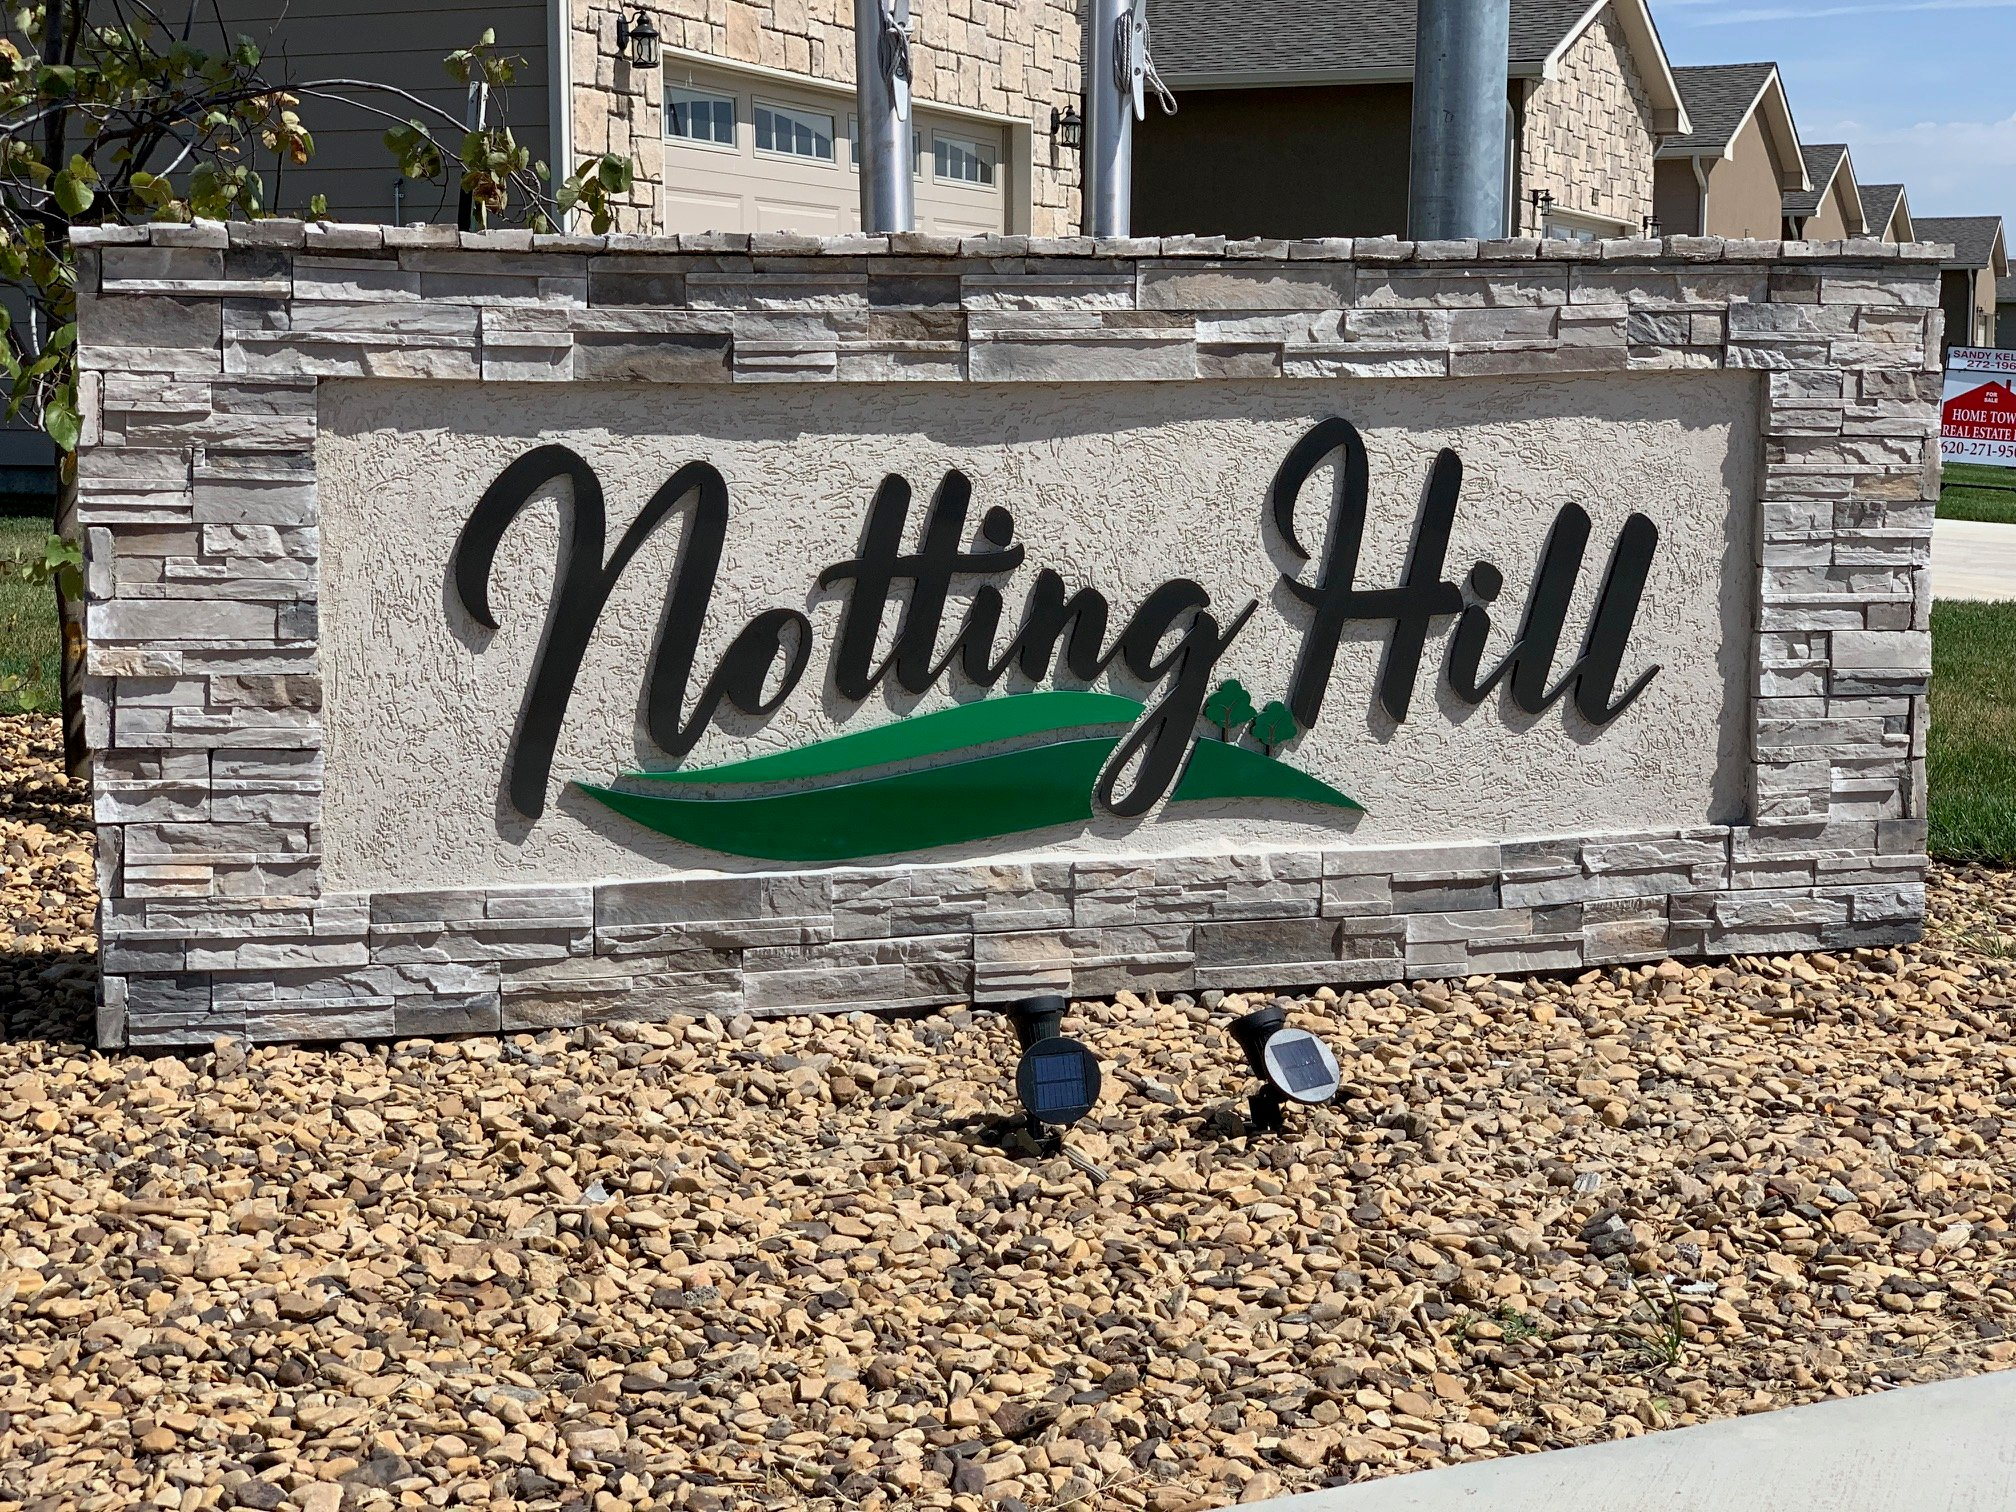 Notting Hill Condos Garden City, KS